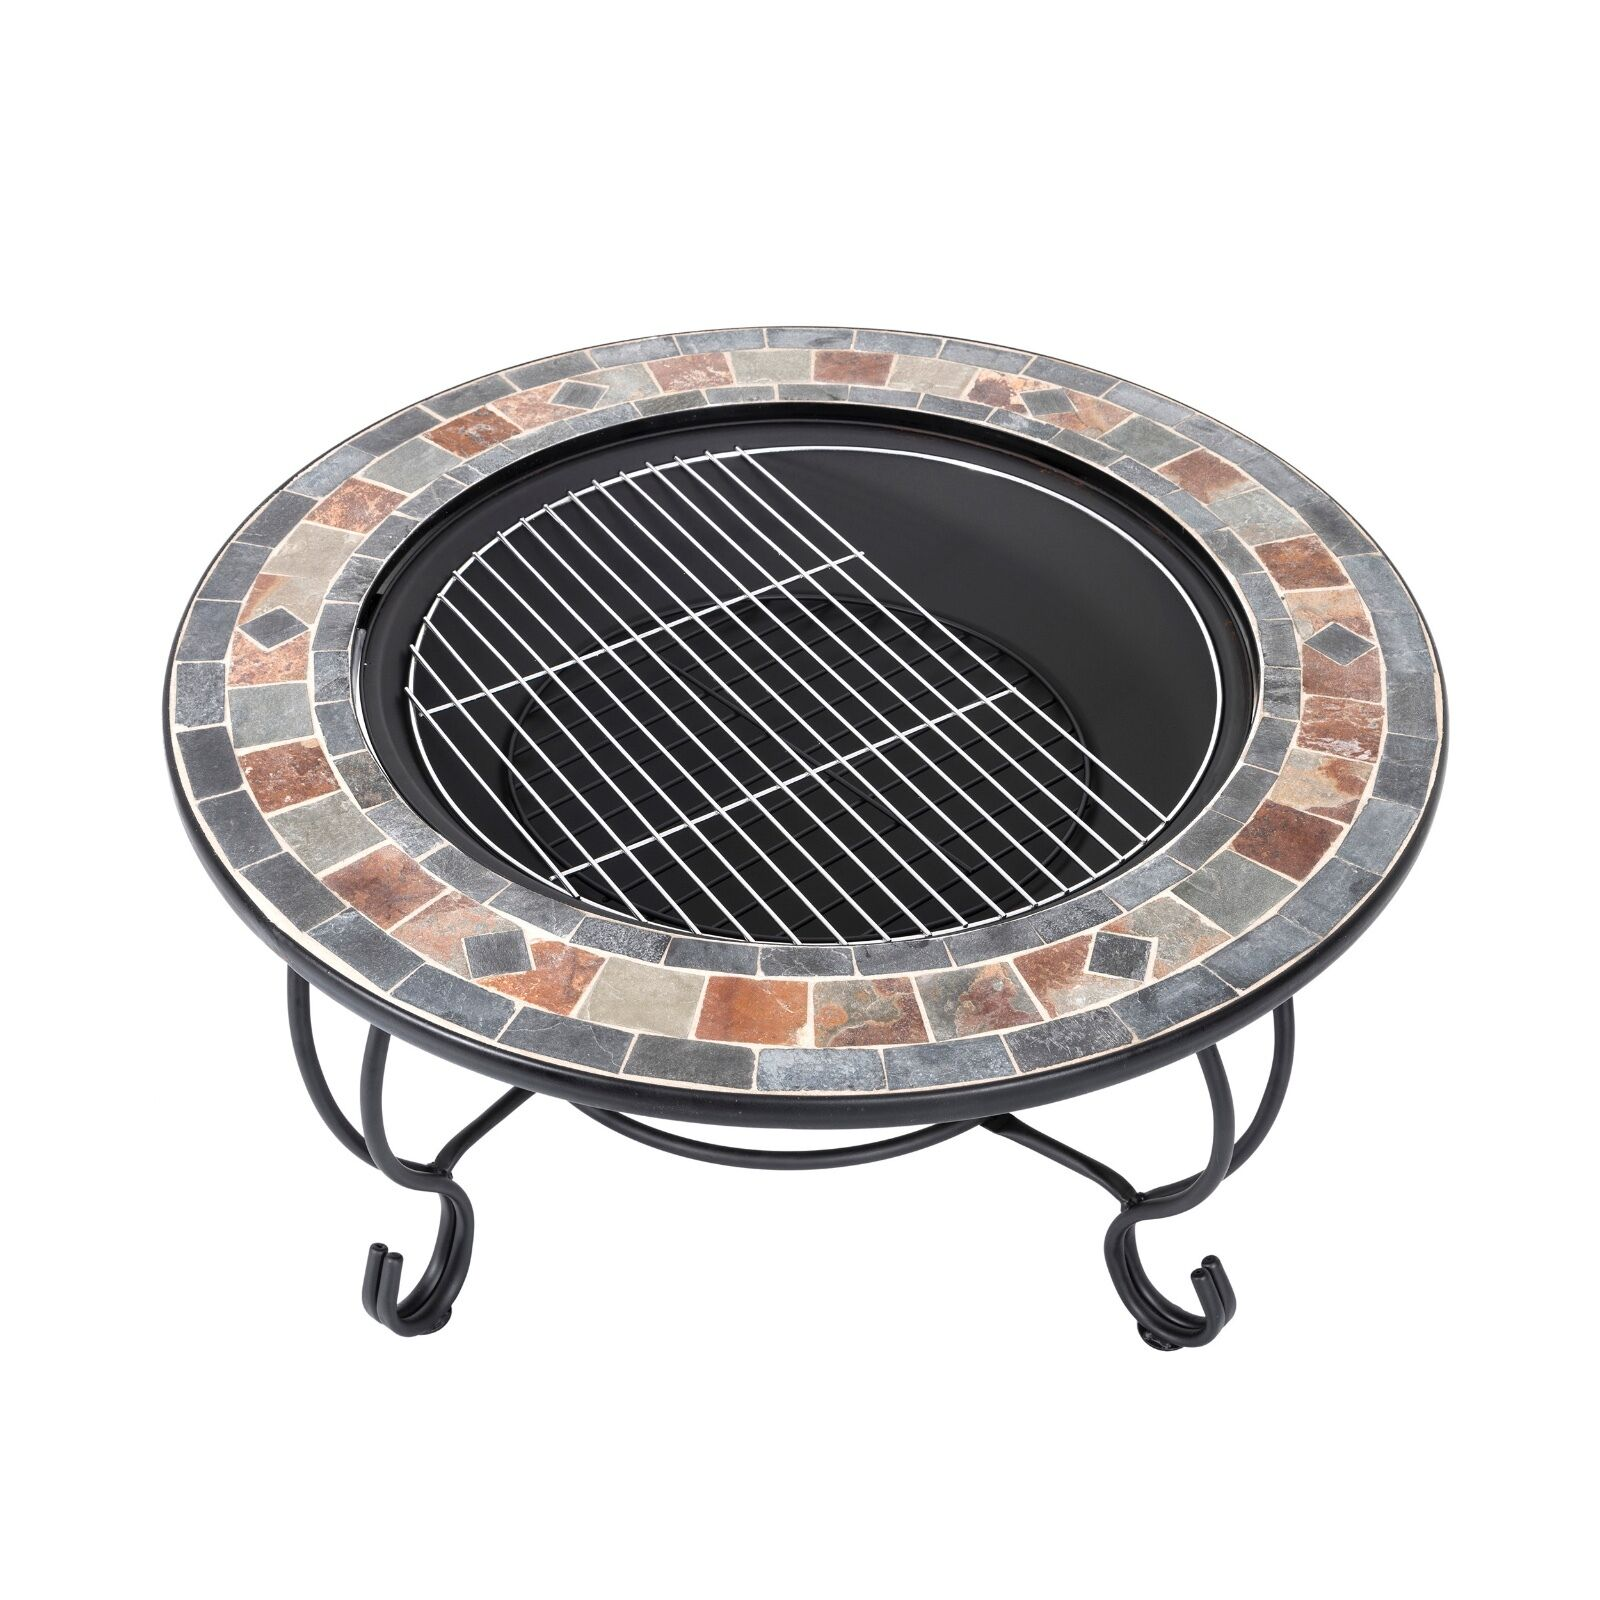 Round Outdoor Garden Tiled Slate Coffee Table And Fire Pit